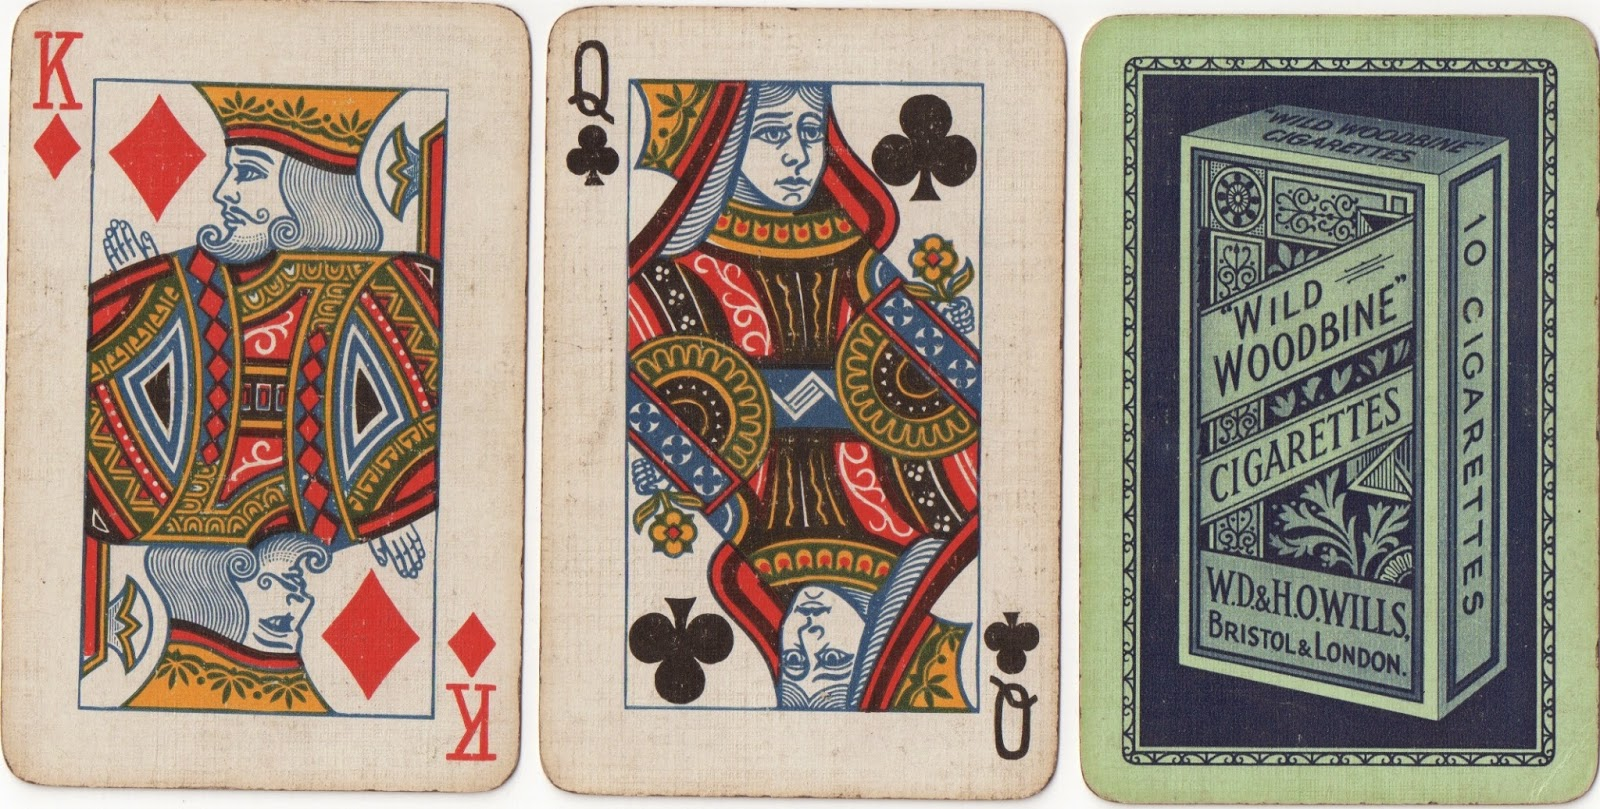 2: Over 70 Years of Collecting Playing Cards - The World of Playing